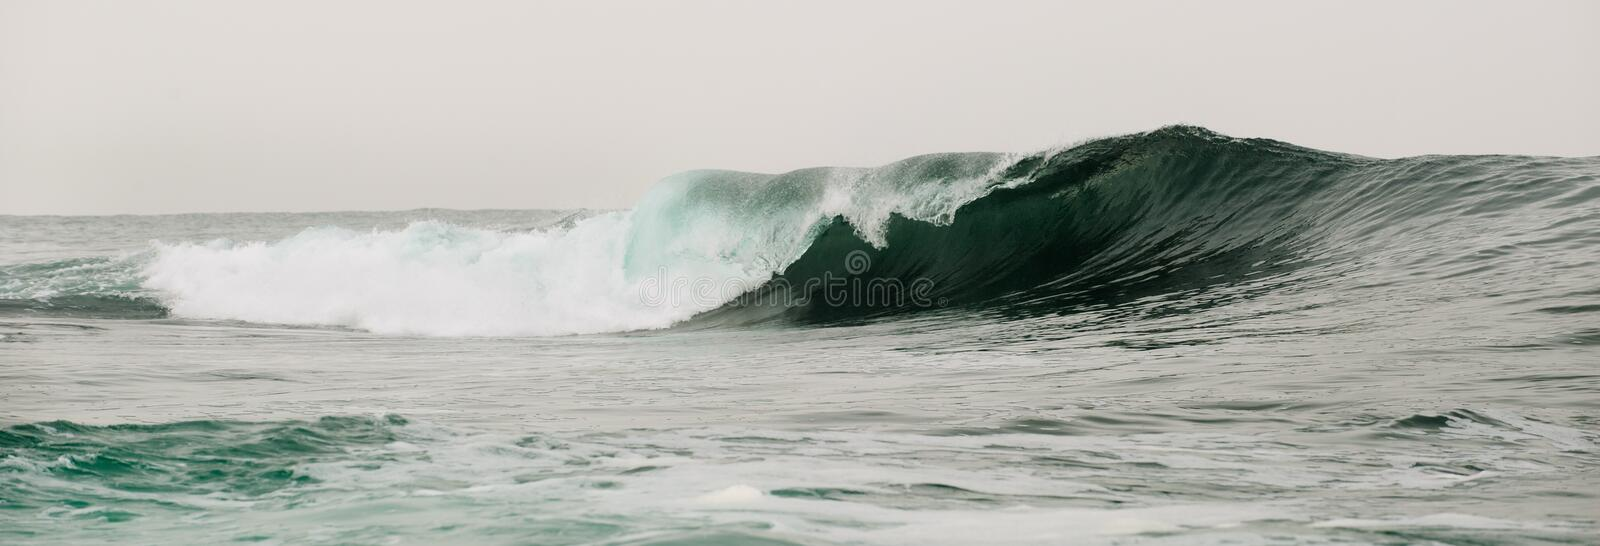 Wave breaks on a shallow bank. Wave on the surface of the ocean. Wave breaks on a shallow bank royalty free stock photos